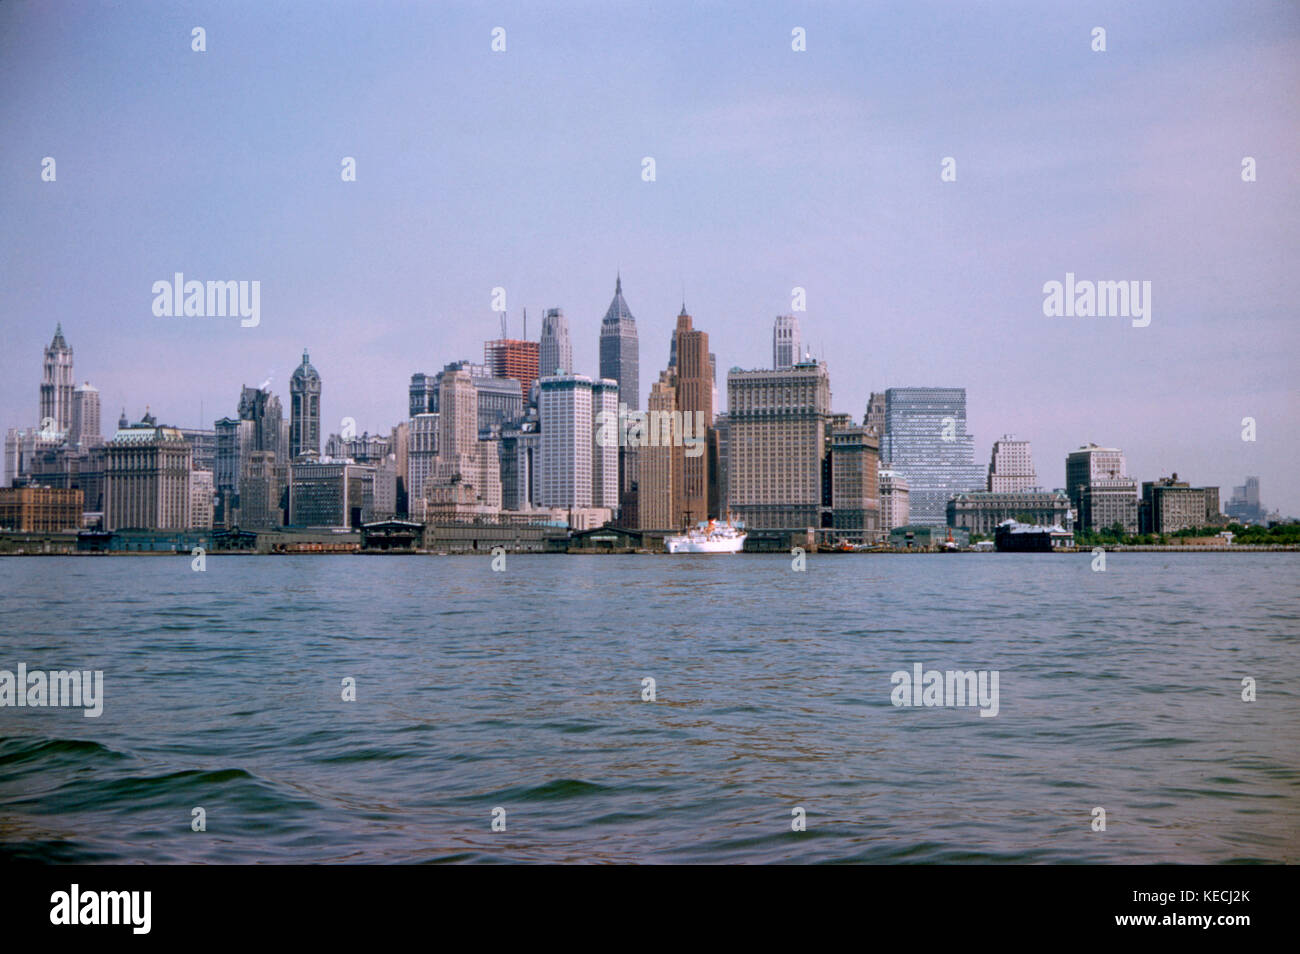 New York City 1950s Stock Photos Amp New York City 1950s